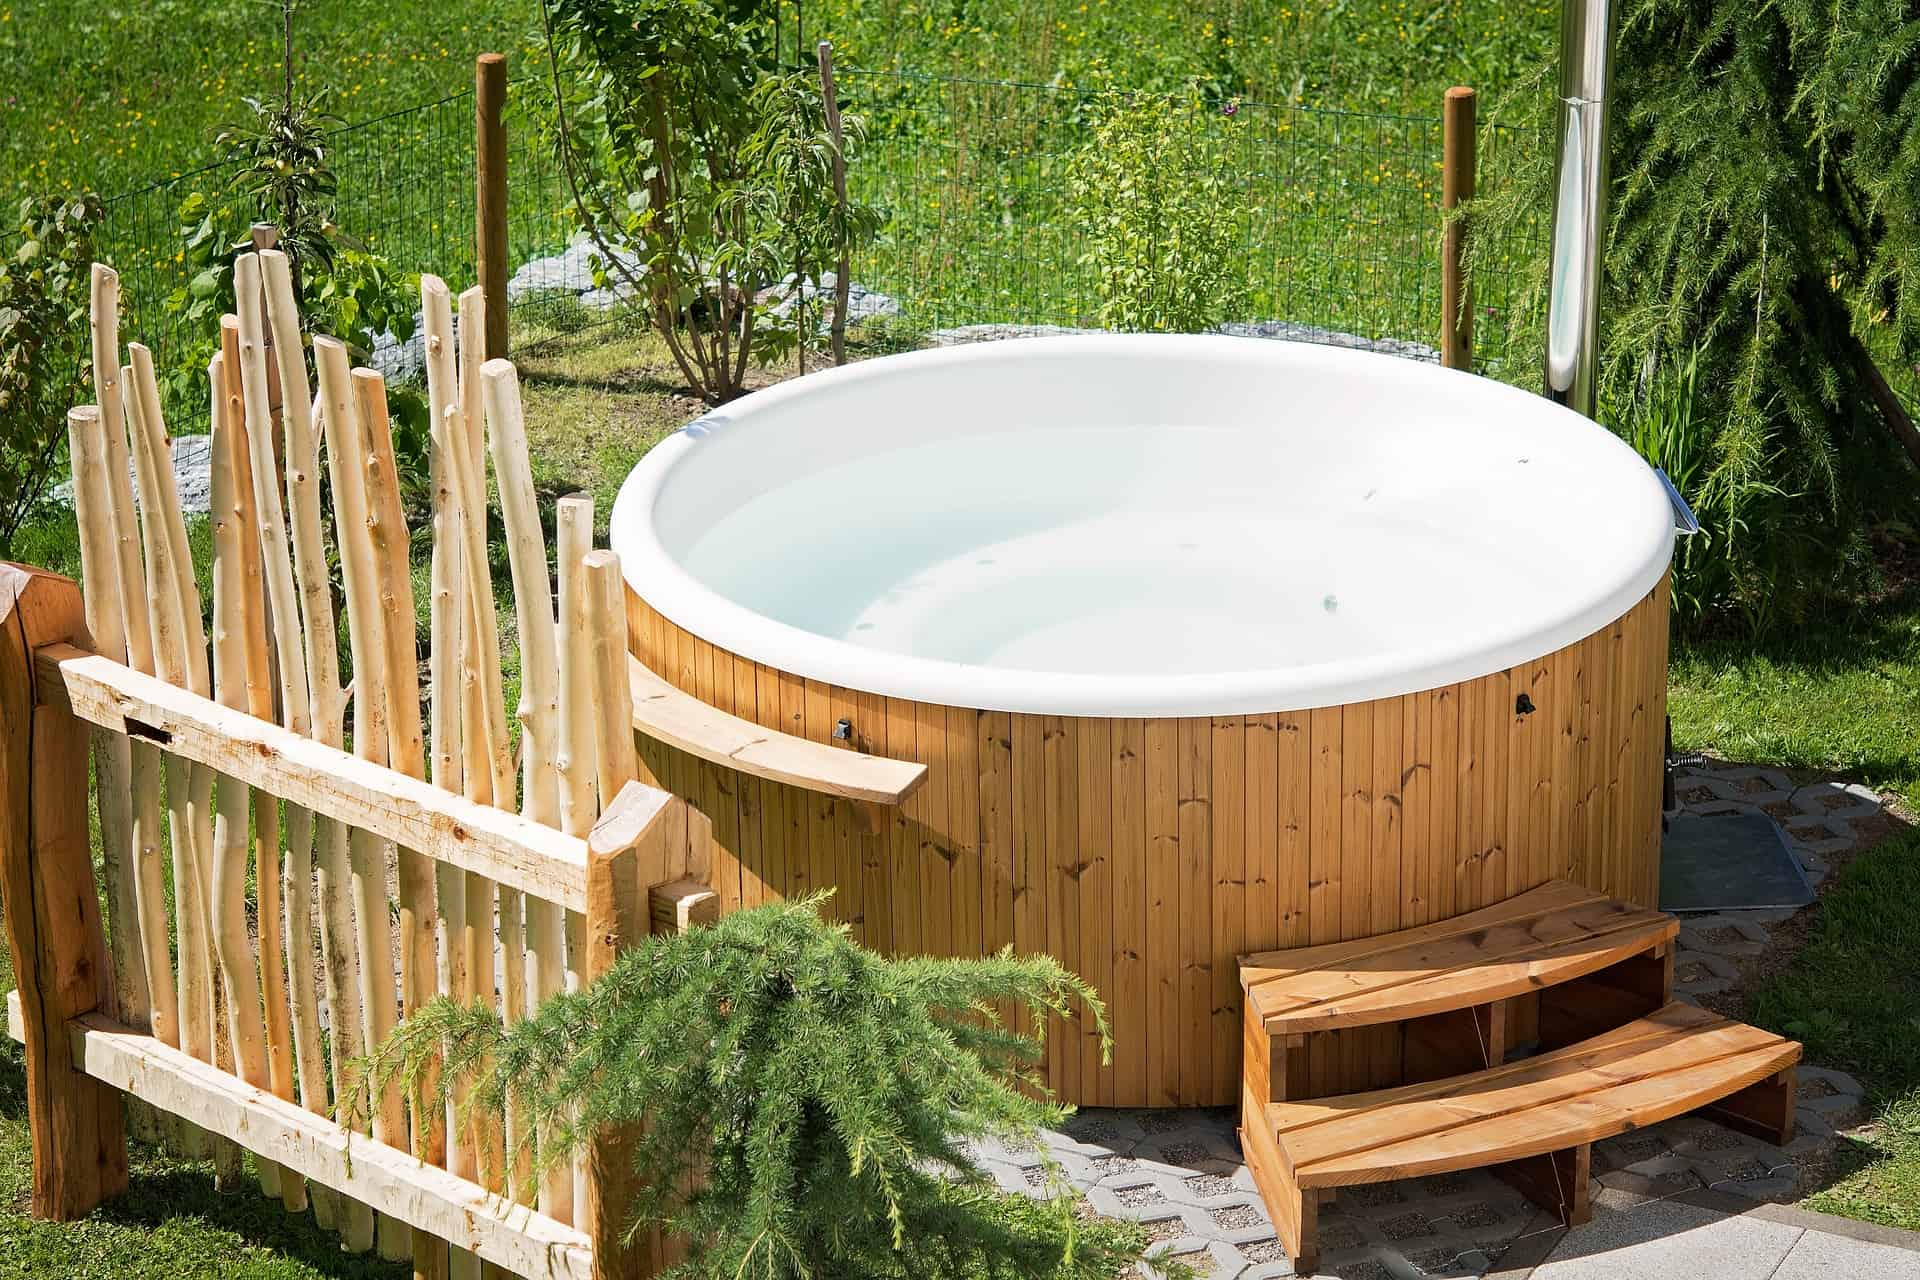 Does a Hot Tub Have to Sit on Concrete?